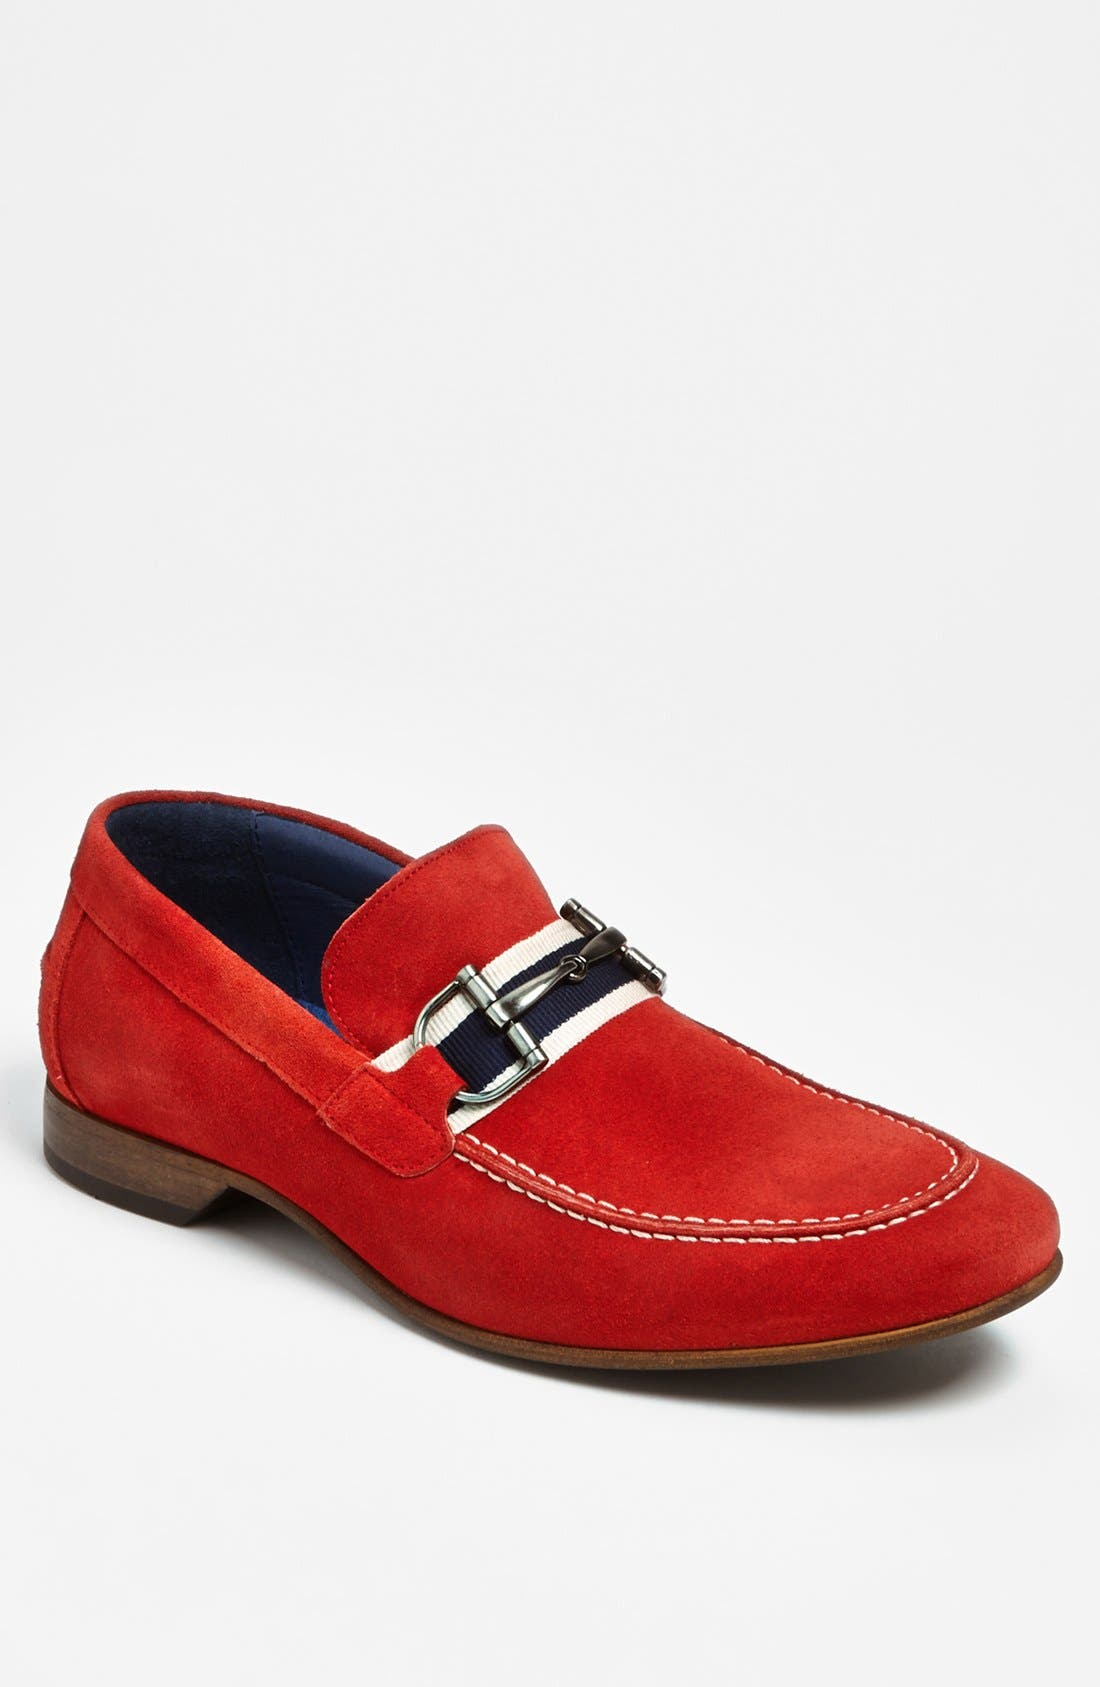 Alternate Image 1 Selected - Kenneth Cole Reaction 'Roof Top' Bit Loafer